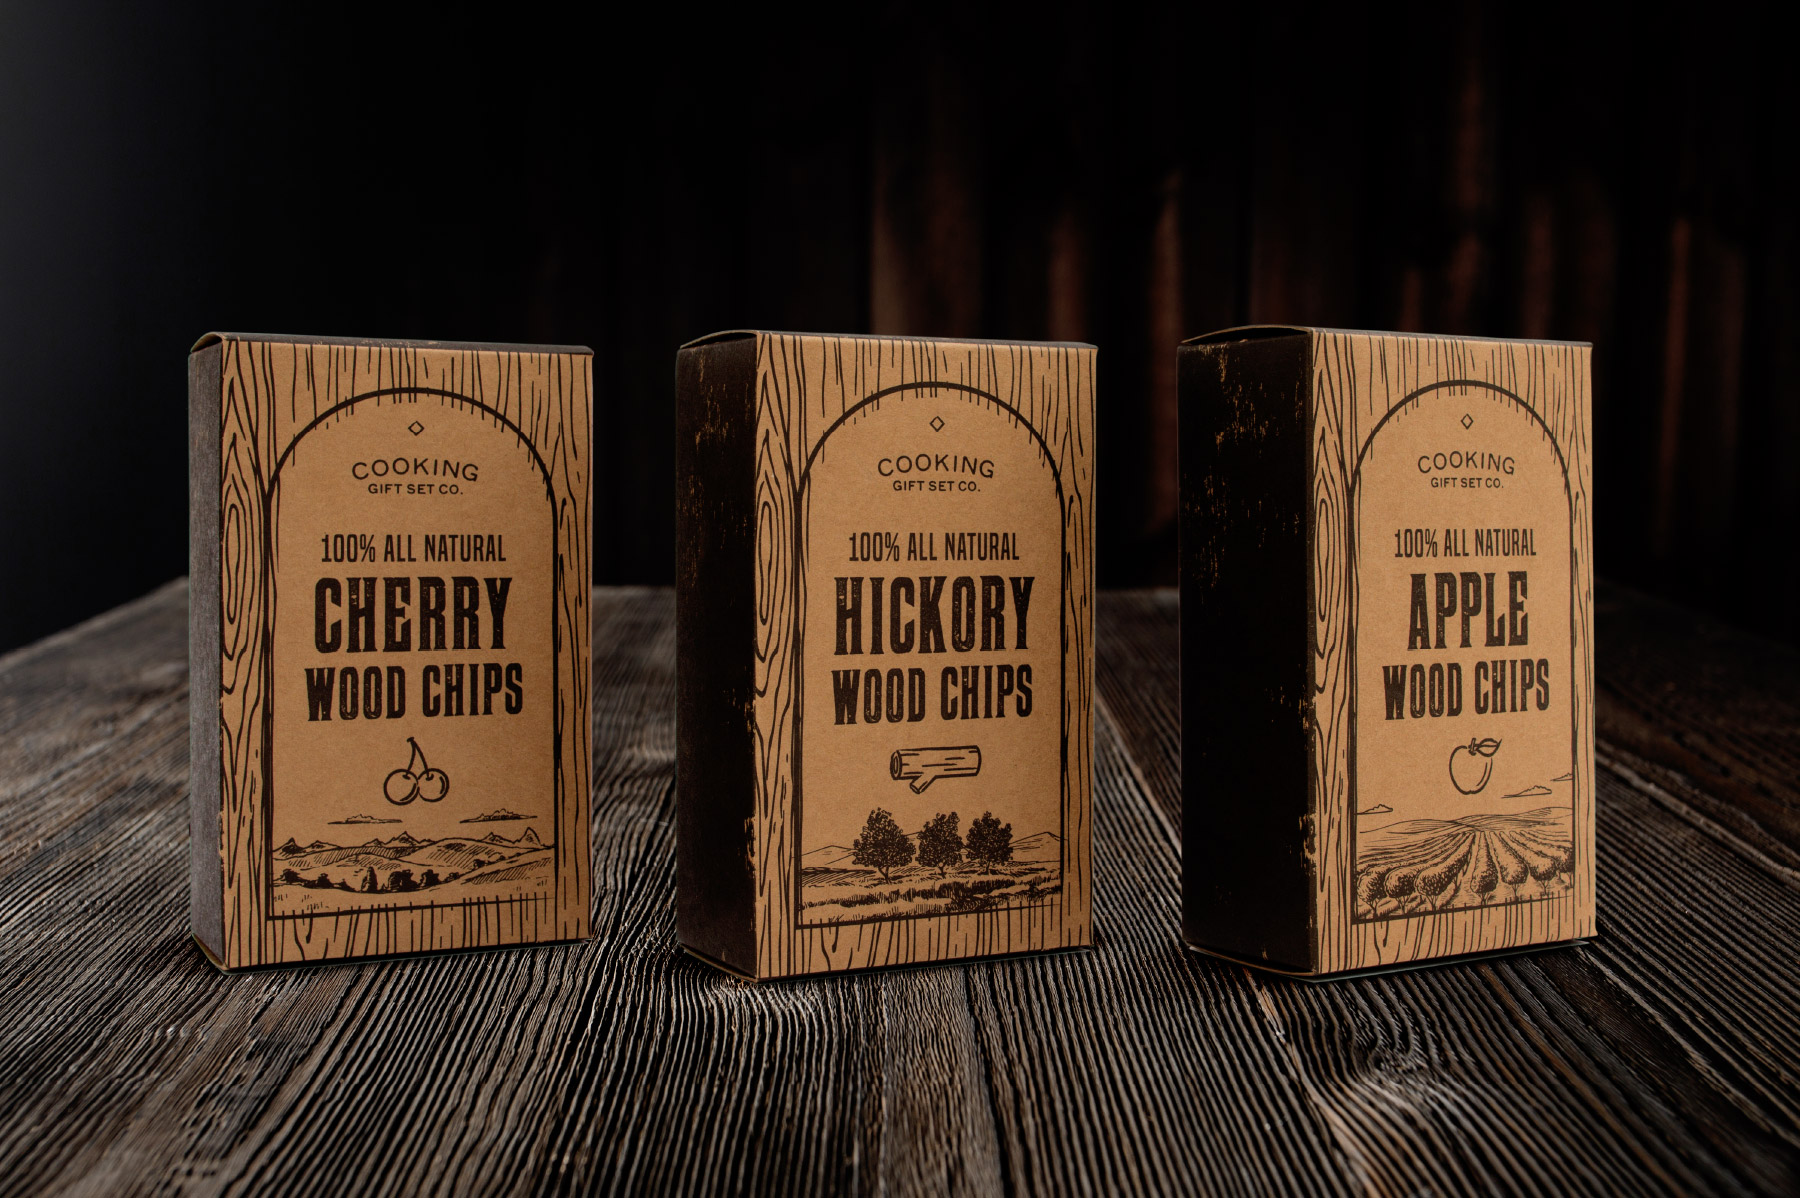 Cherry, Hickory, and Apple Wood Chips Box Design